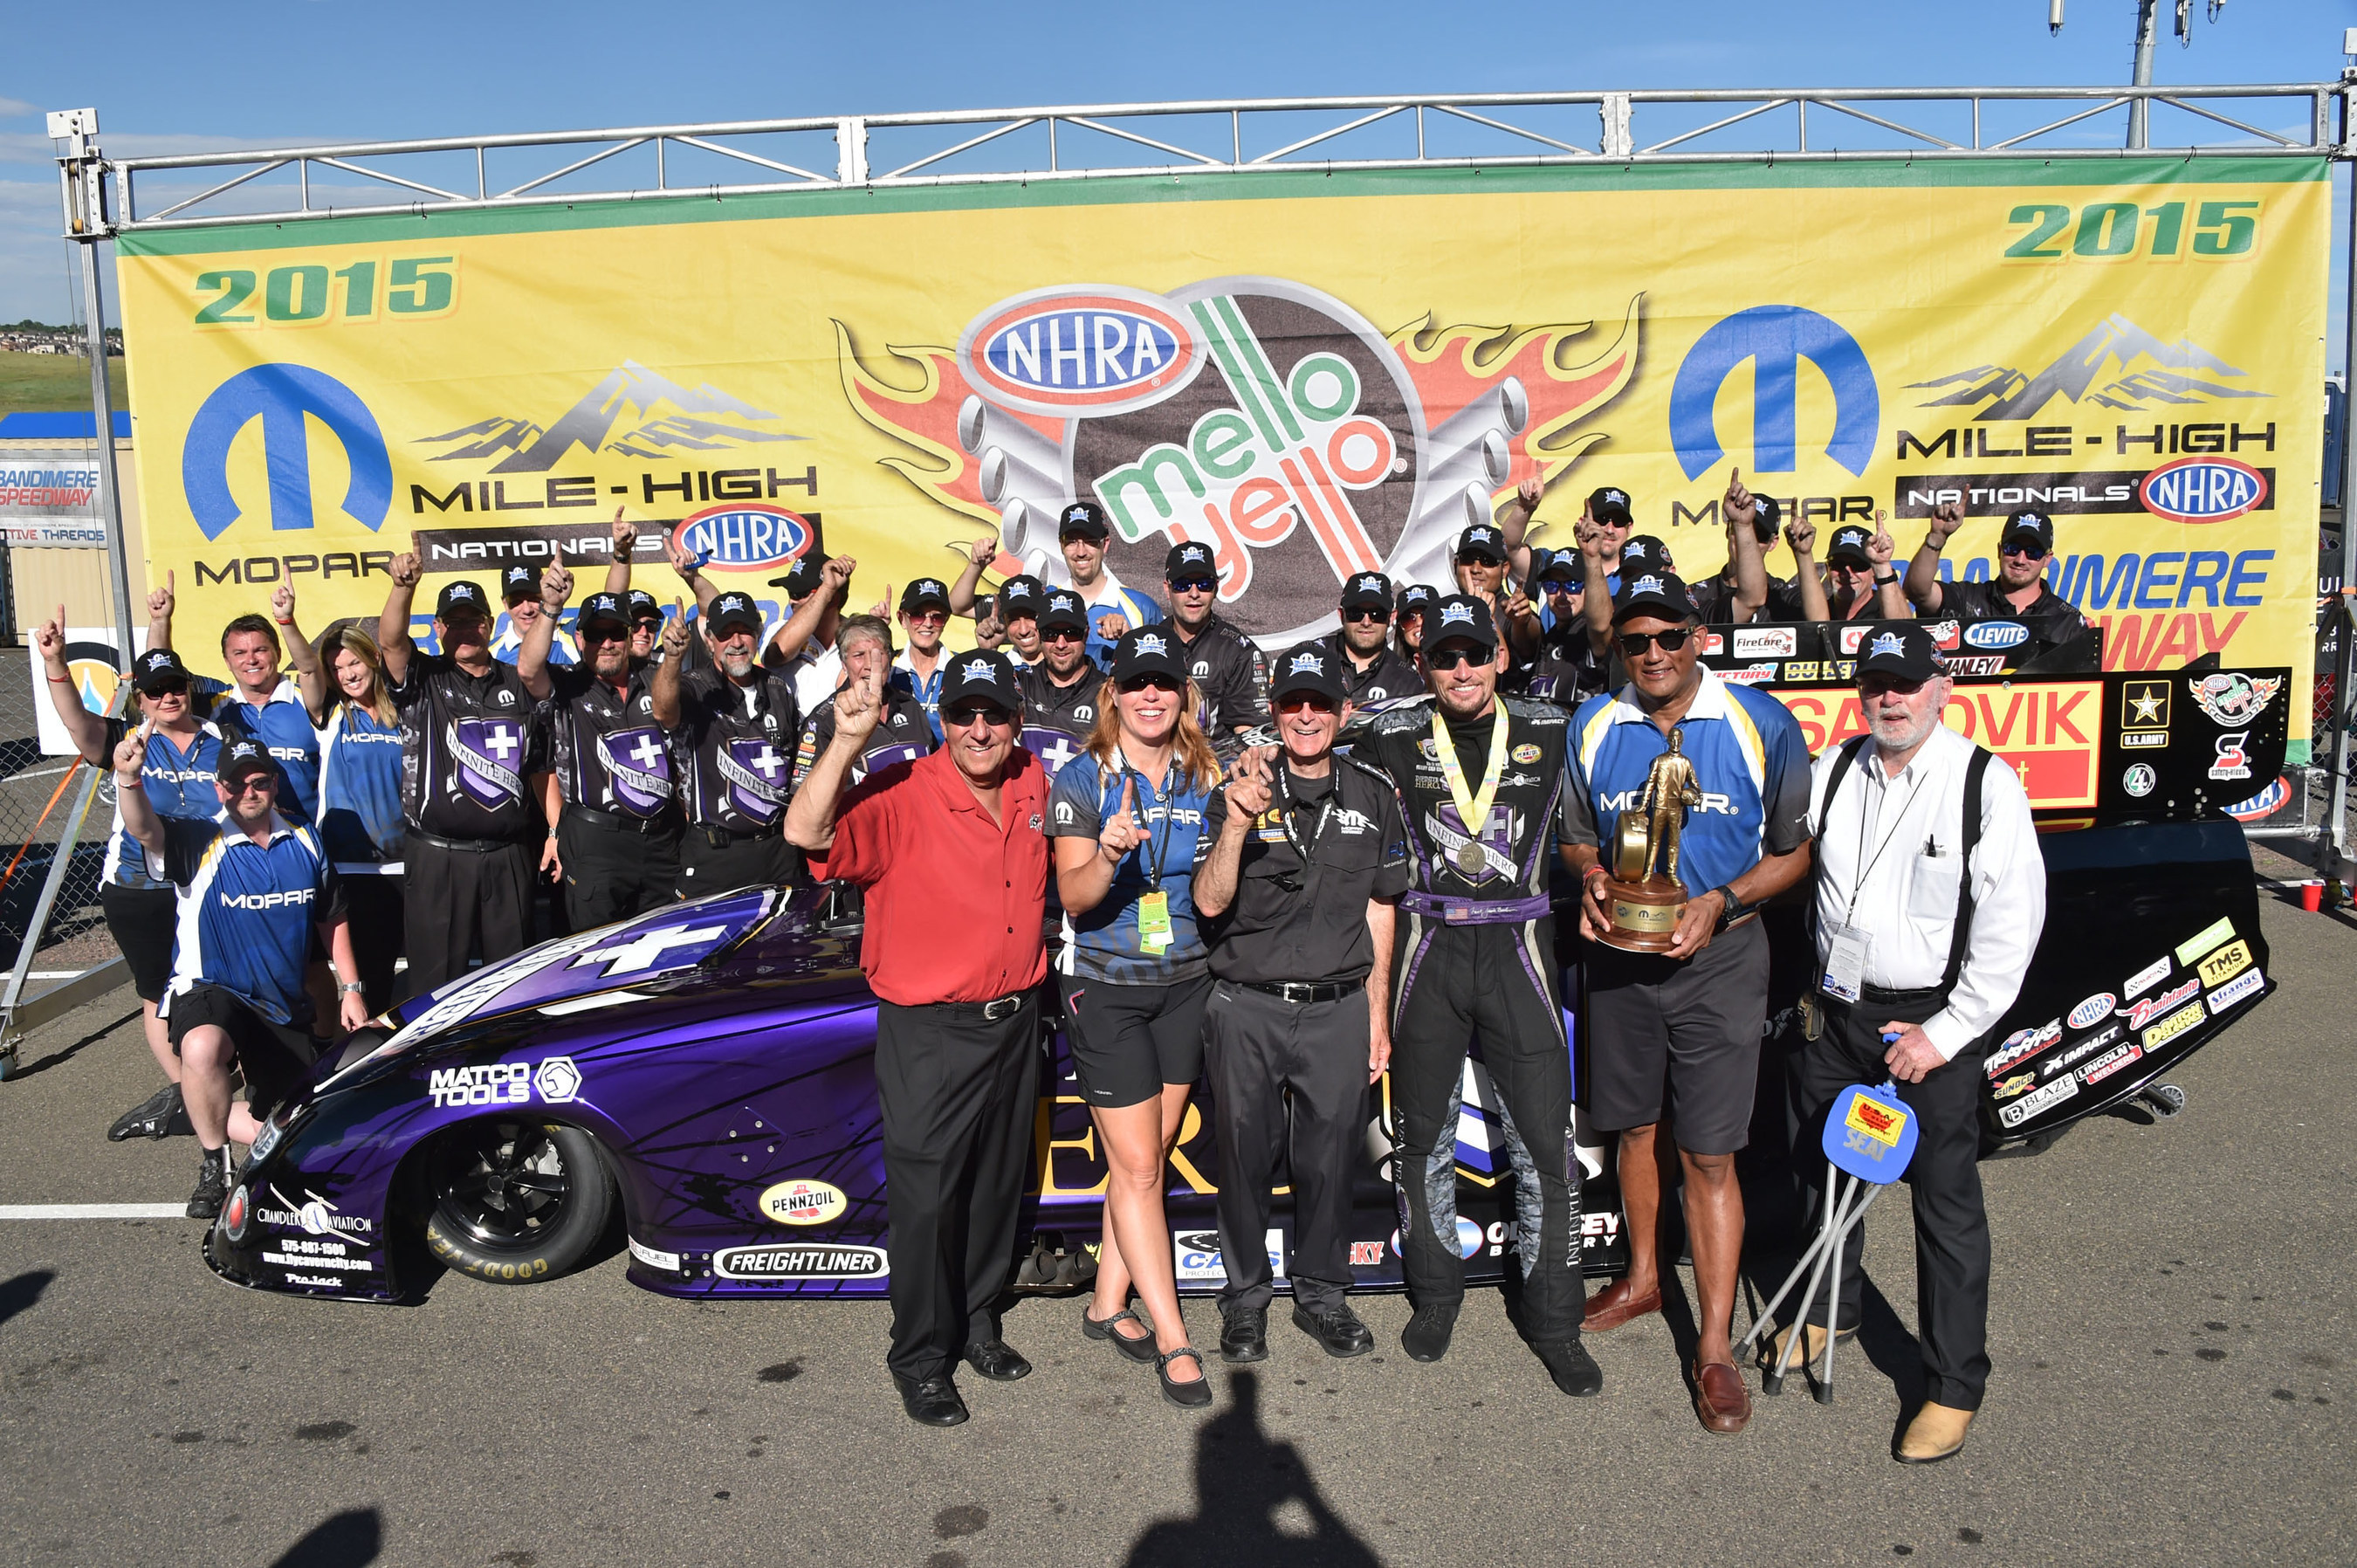 Jack Beckman drives Infinite Hero 2015 Dodge Charger R/T to win at Mopar Mile-High NHRA Nationals.